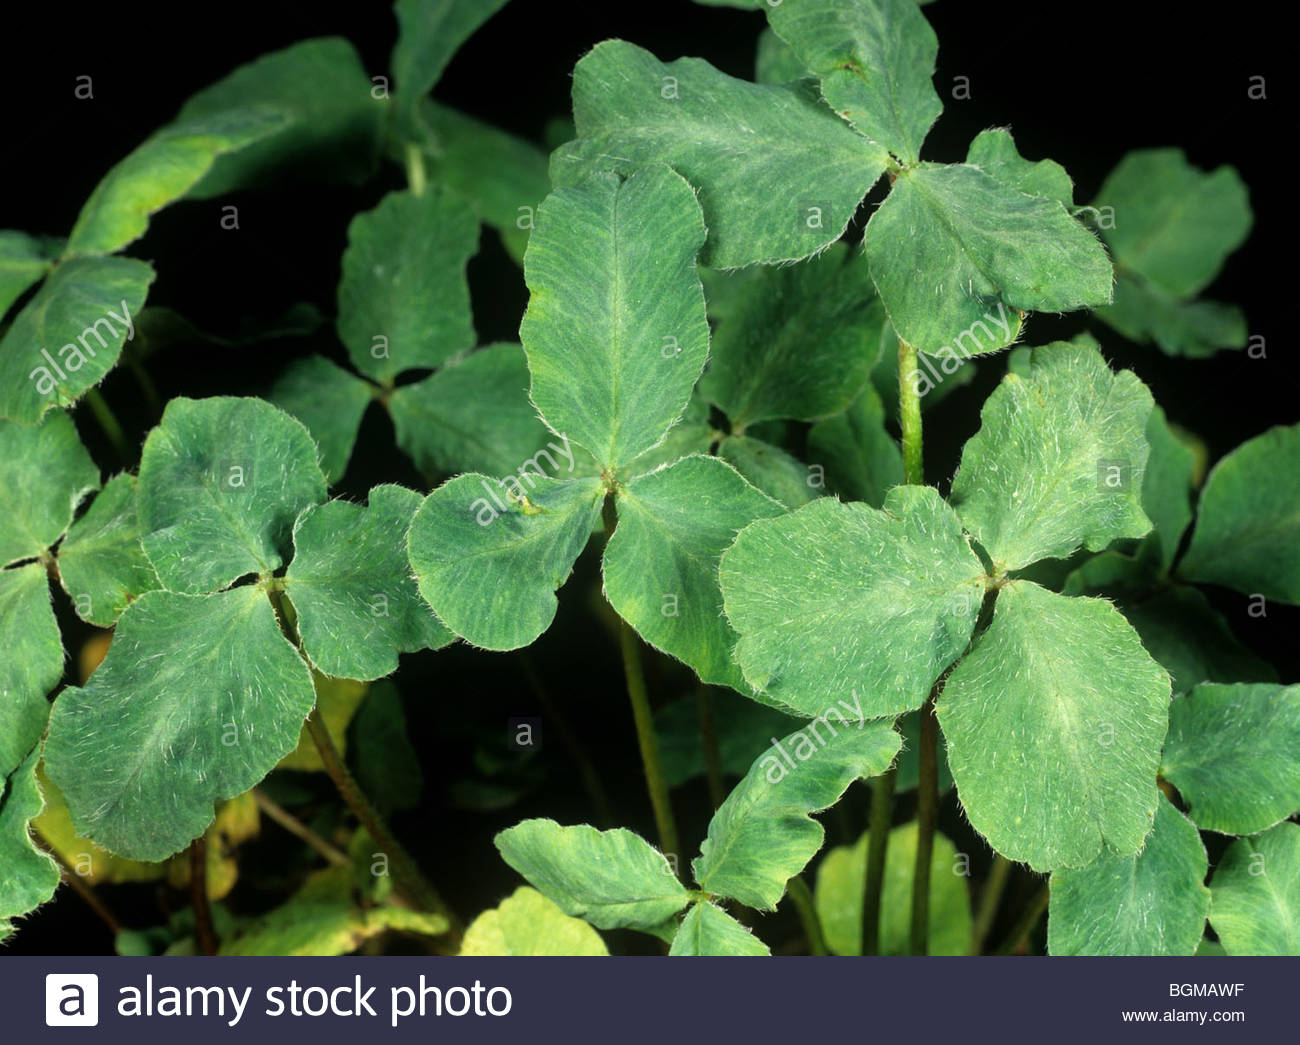 Clover stunt virus damage to red clover leaves - Stock Image